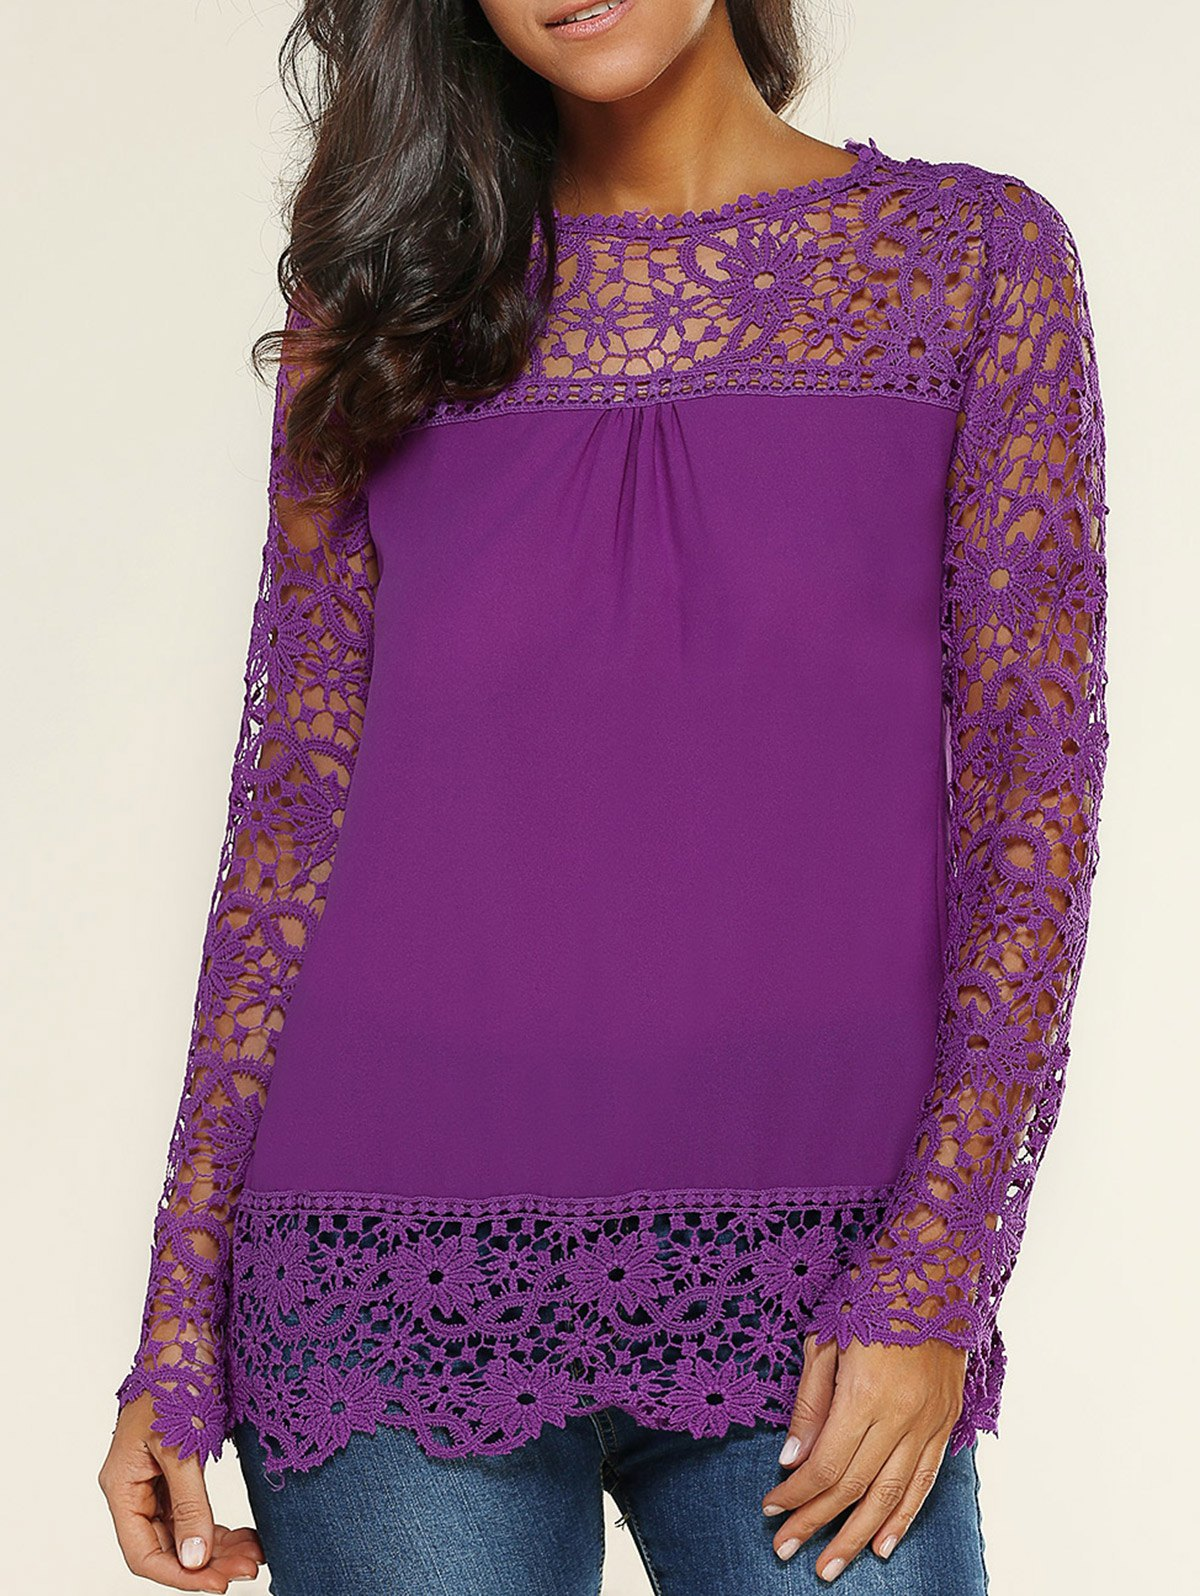 Lace Spliced Floral Crochet Openwork Blouse - PURPLE L